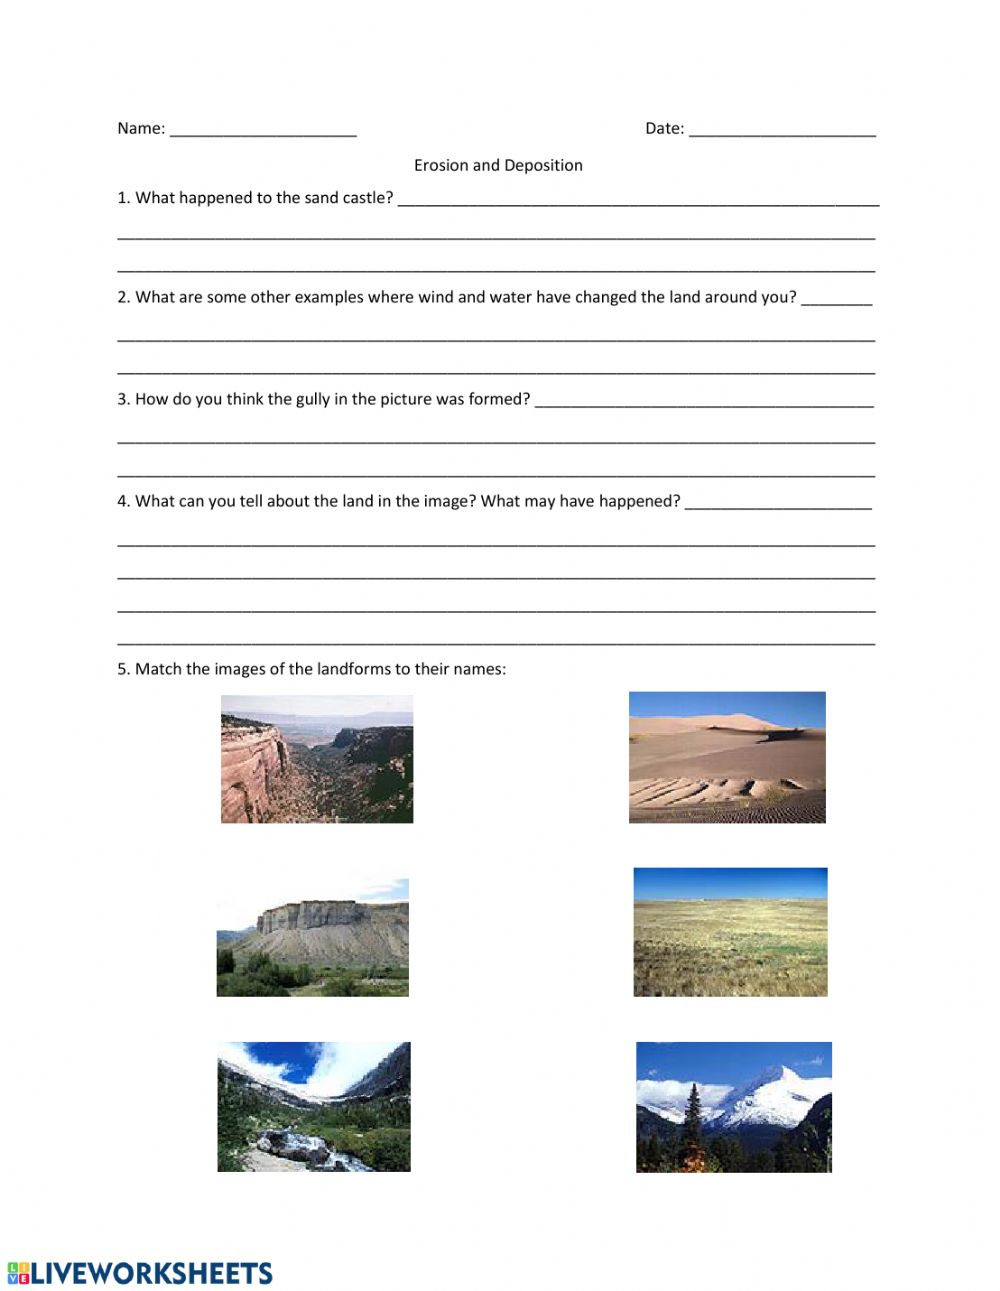 Erosion and Deposition Worksheet Erosion and Deposition Short Answers Interactive Worksheet